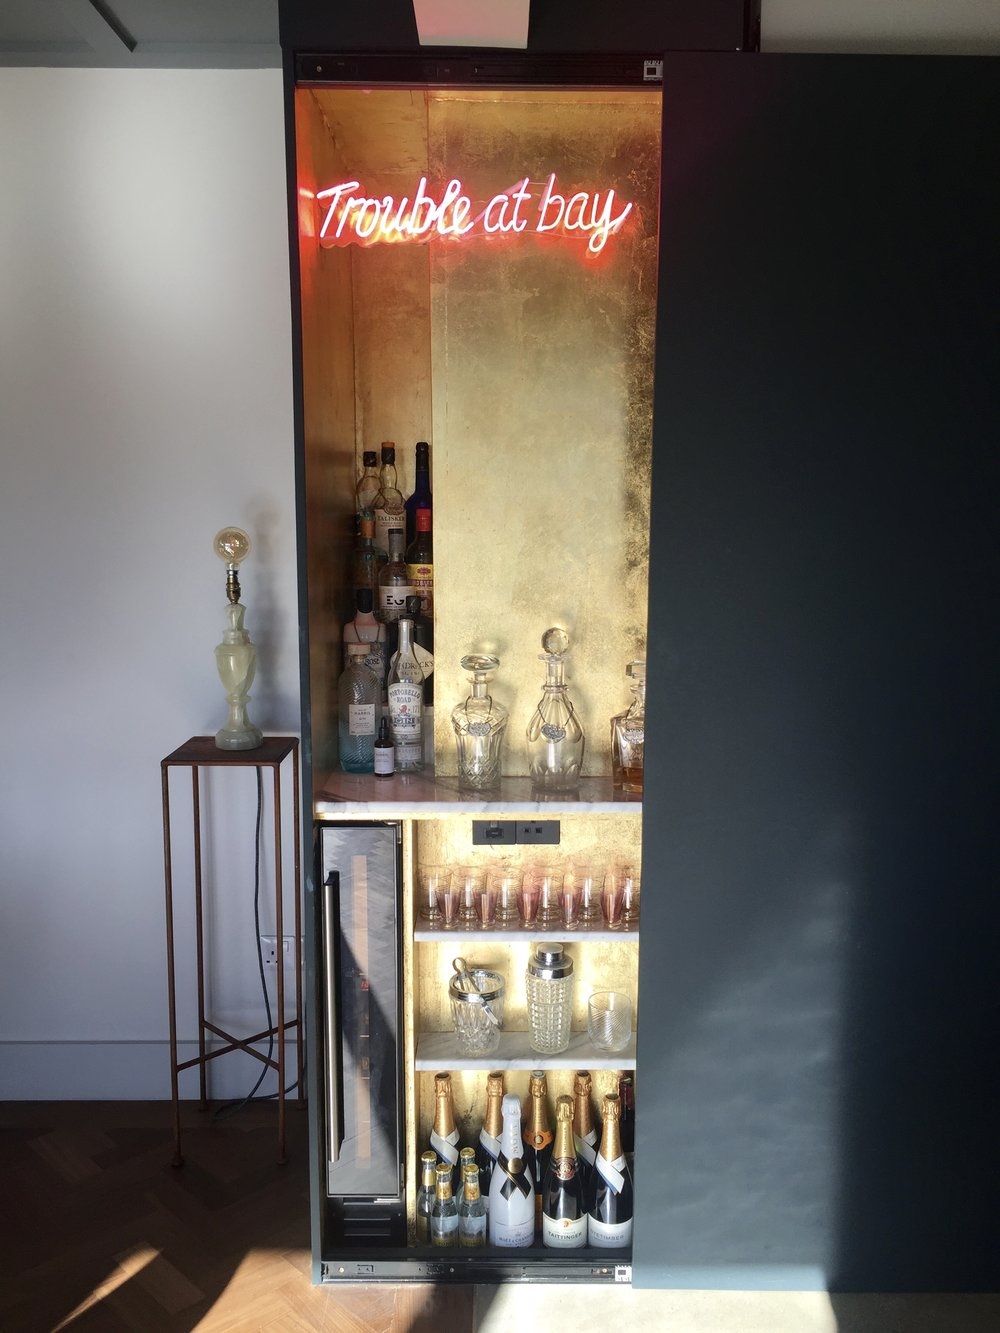 Behind the Black Blue sliding wall Michaela has added gold leaf, neon and carrera marble shelves to make this fabulously stylish hidden bar area    @theoldpiggery